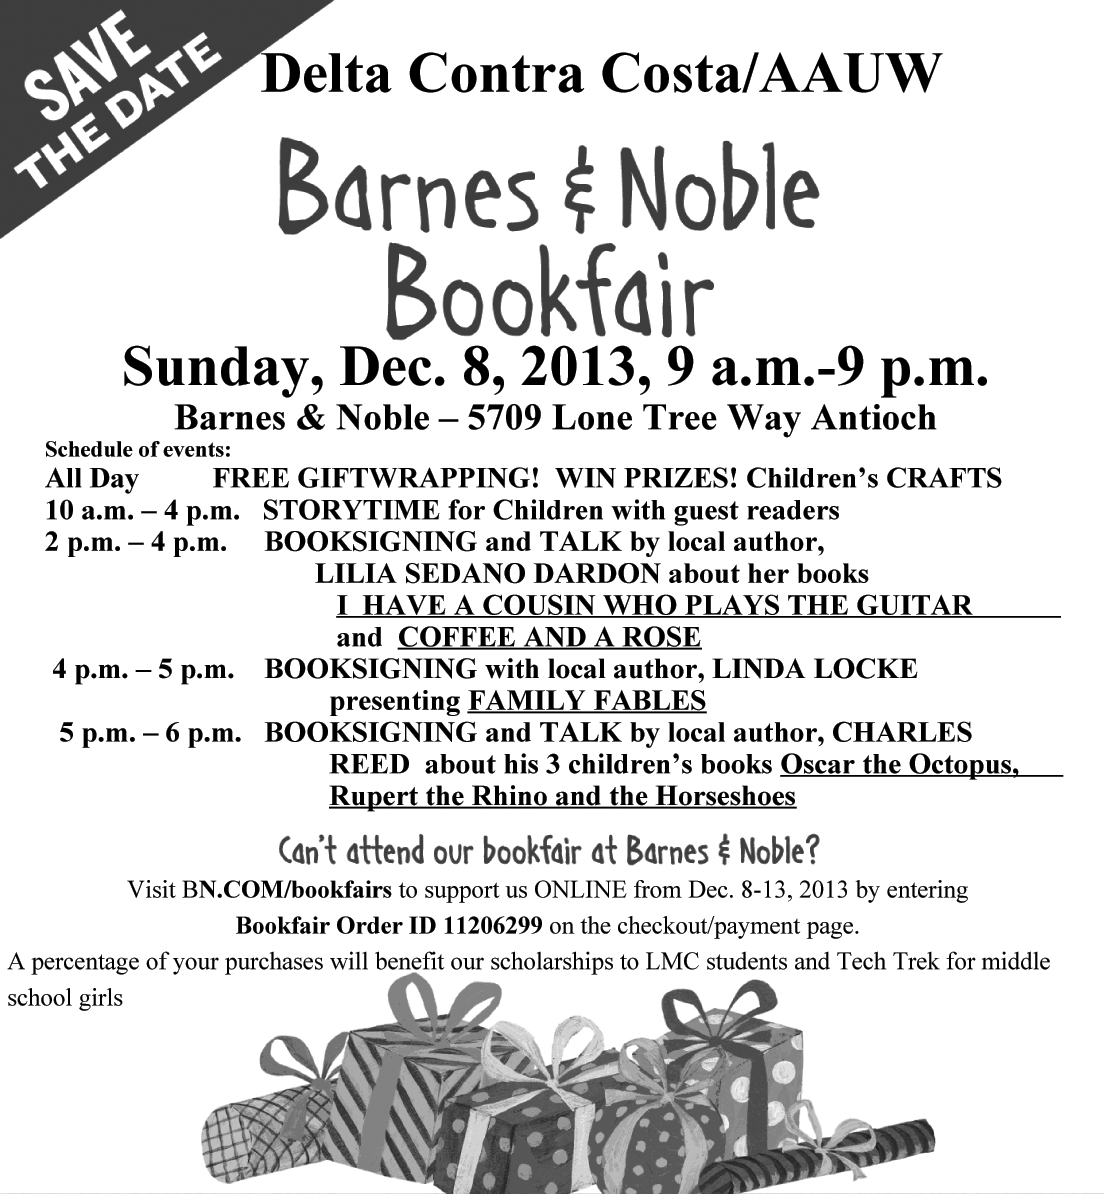 BookFairflyer2013 Book Fair at Barnes & Noble on Sunday to benefit local college and middle school students